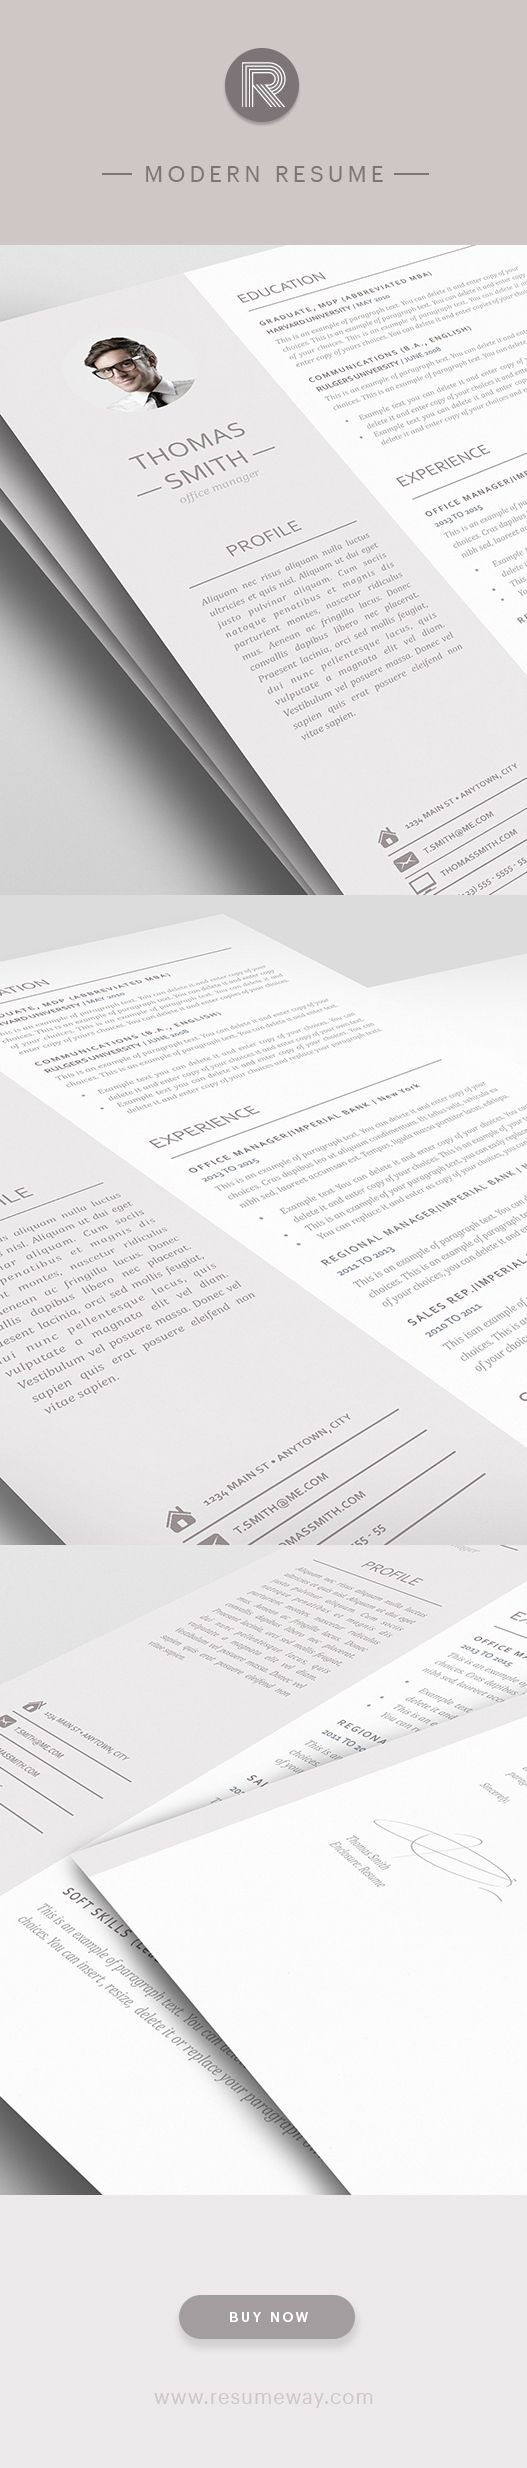 cover letter for cv microsoft word How to get a job at microsoft: the effective cover letter the cover letter and resume as a a cover letter when you applied at microsoft.